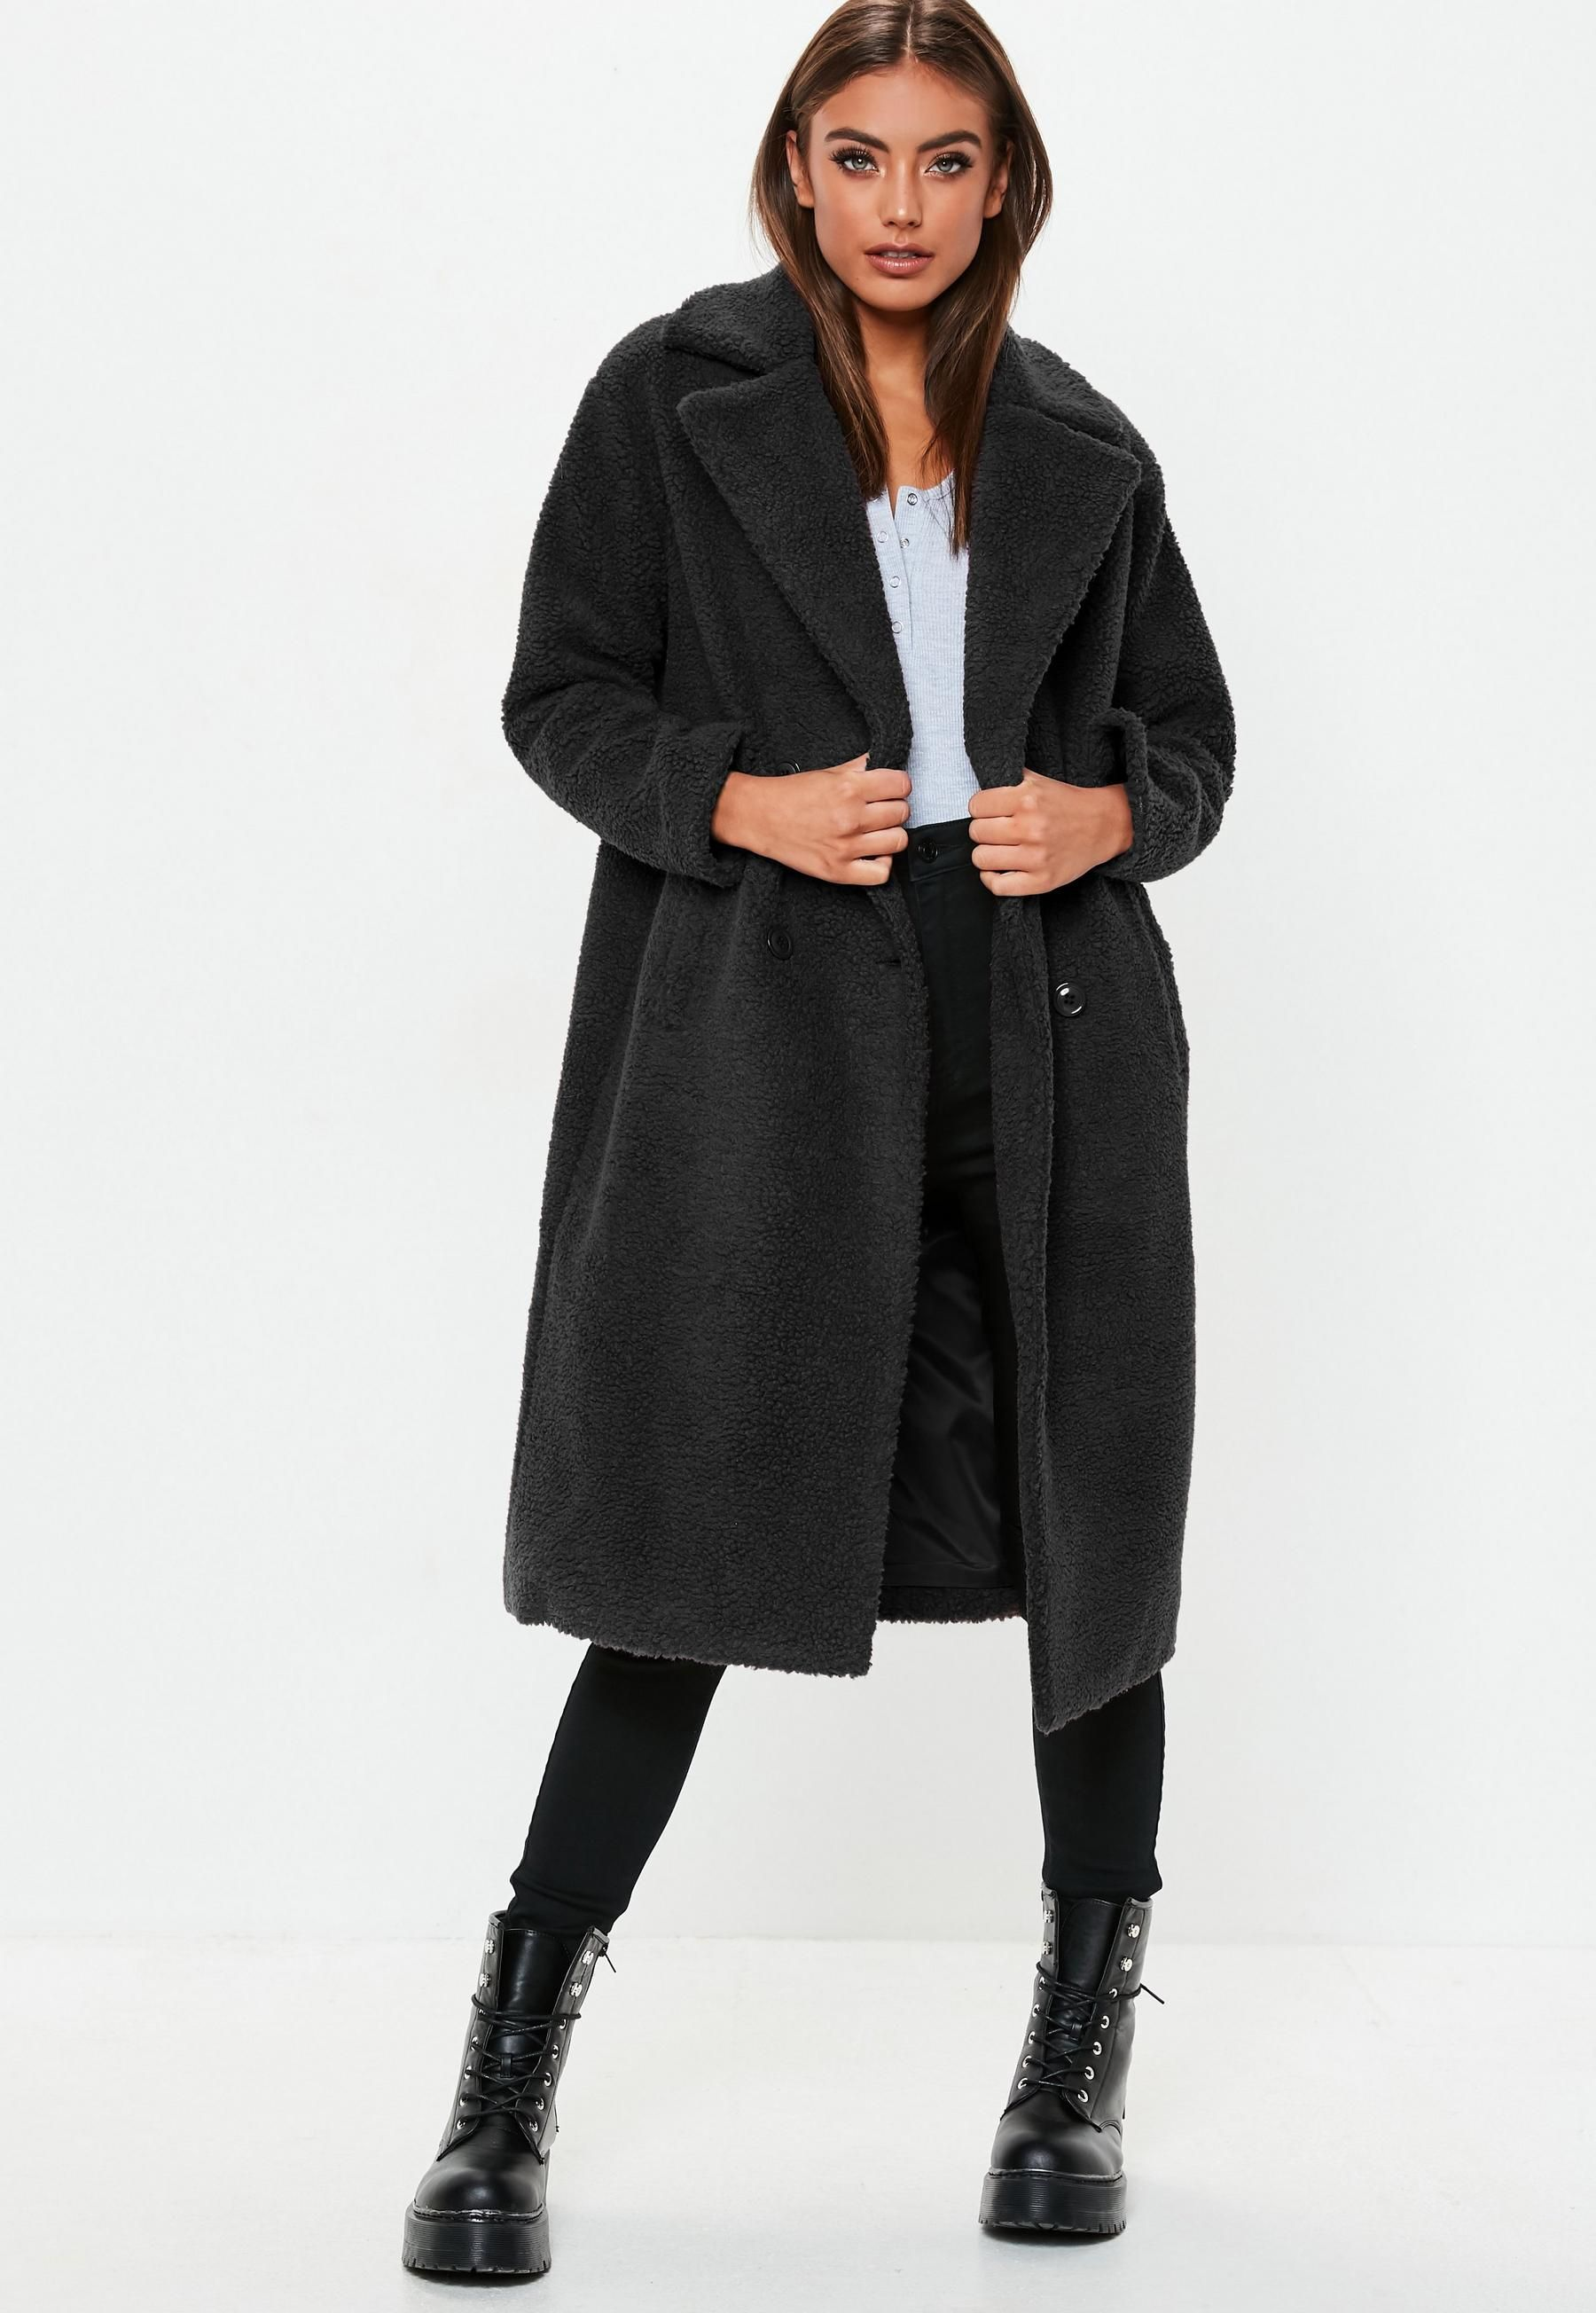 popular stores new concept the latest Tall Black Longline Borg Teddy Coat   Missguided   Missguided outfit